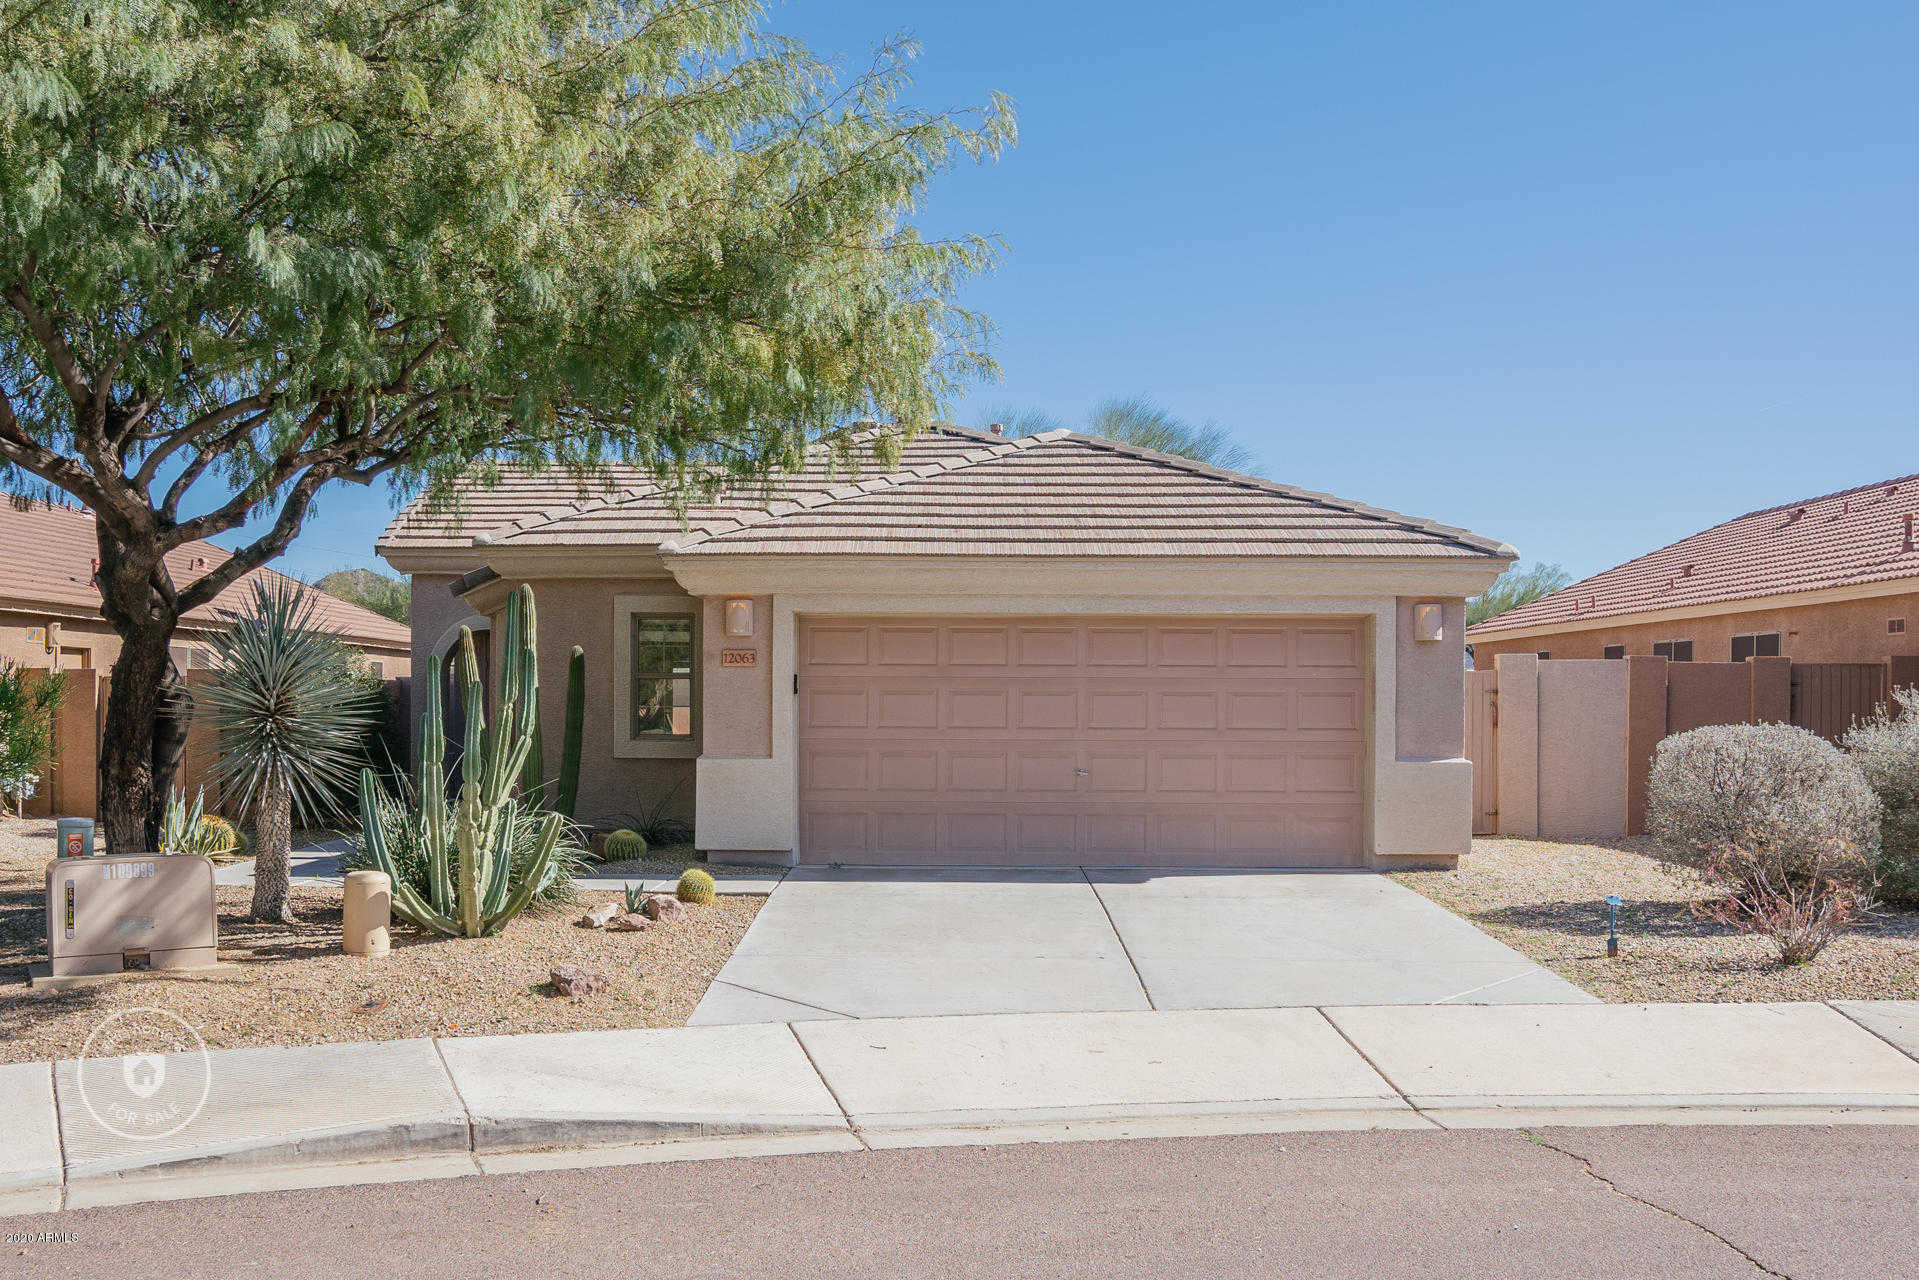 $277,000 - 3Br/2Ba - Home for Sale in Estrella Mountain Ranch Parcel 26, Goodyear